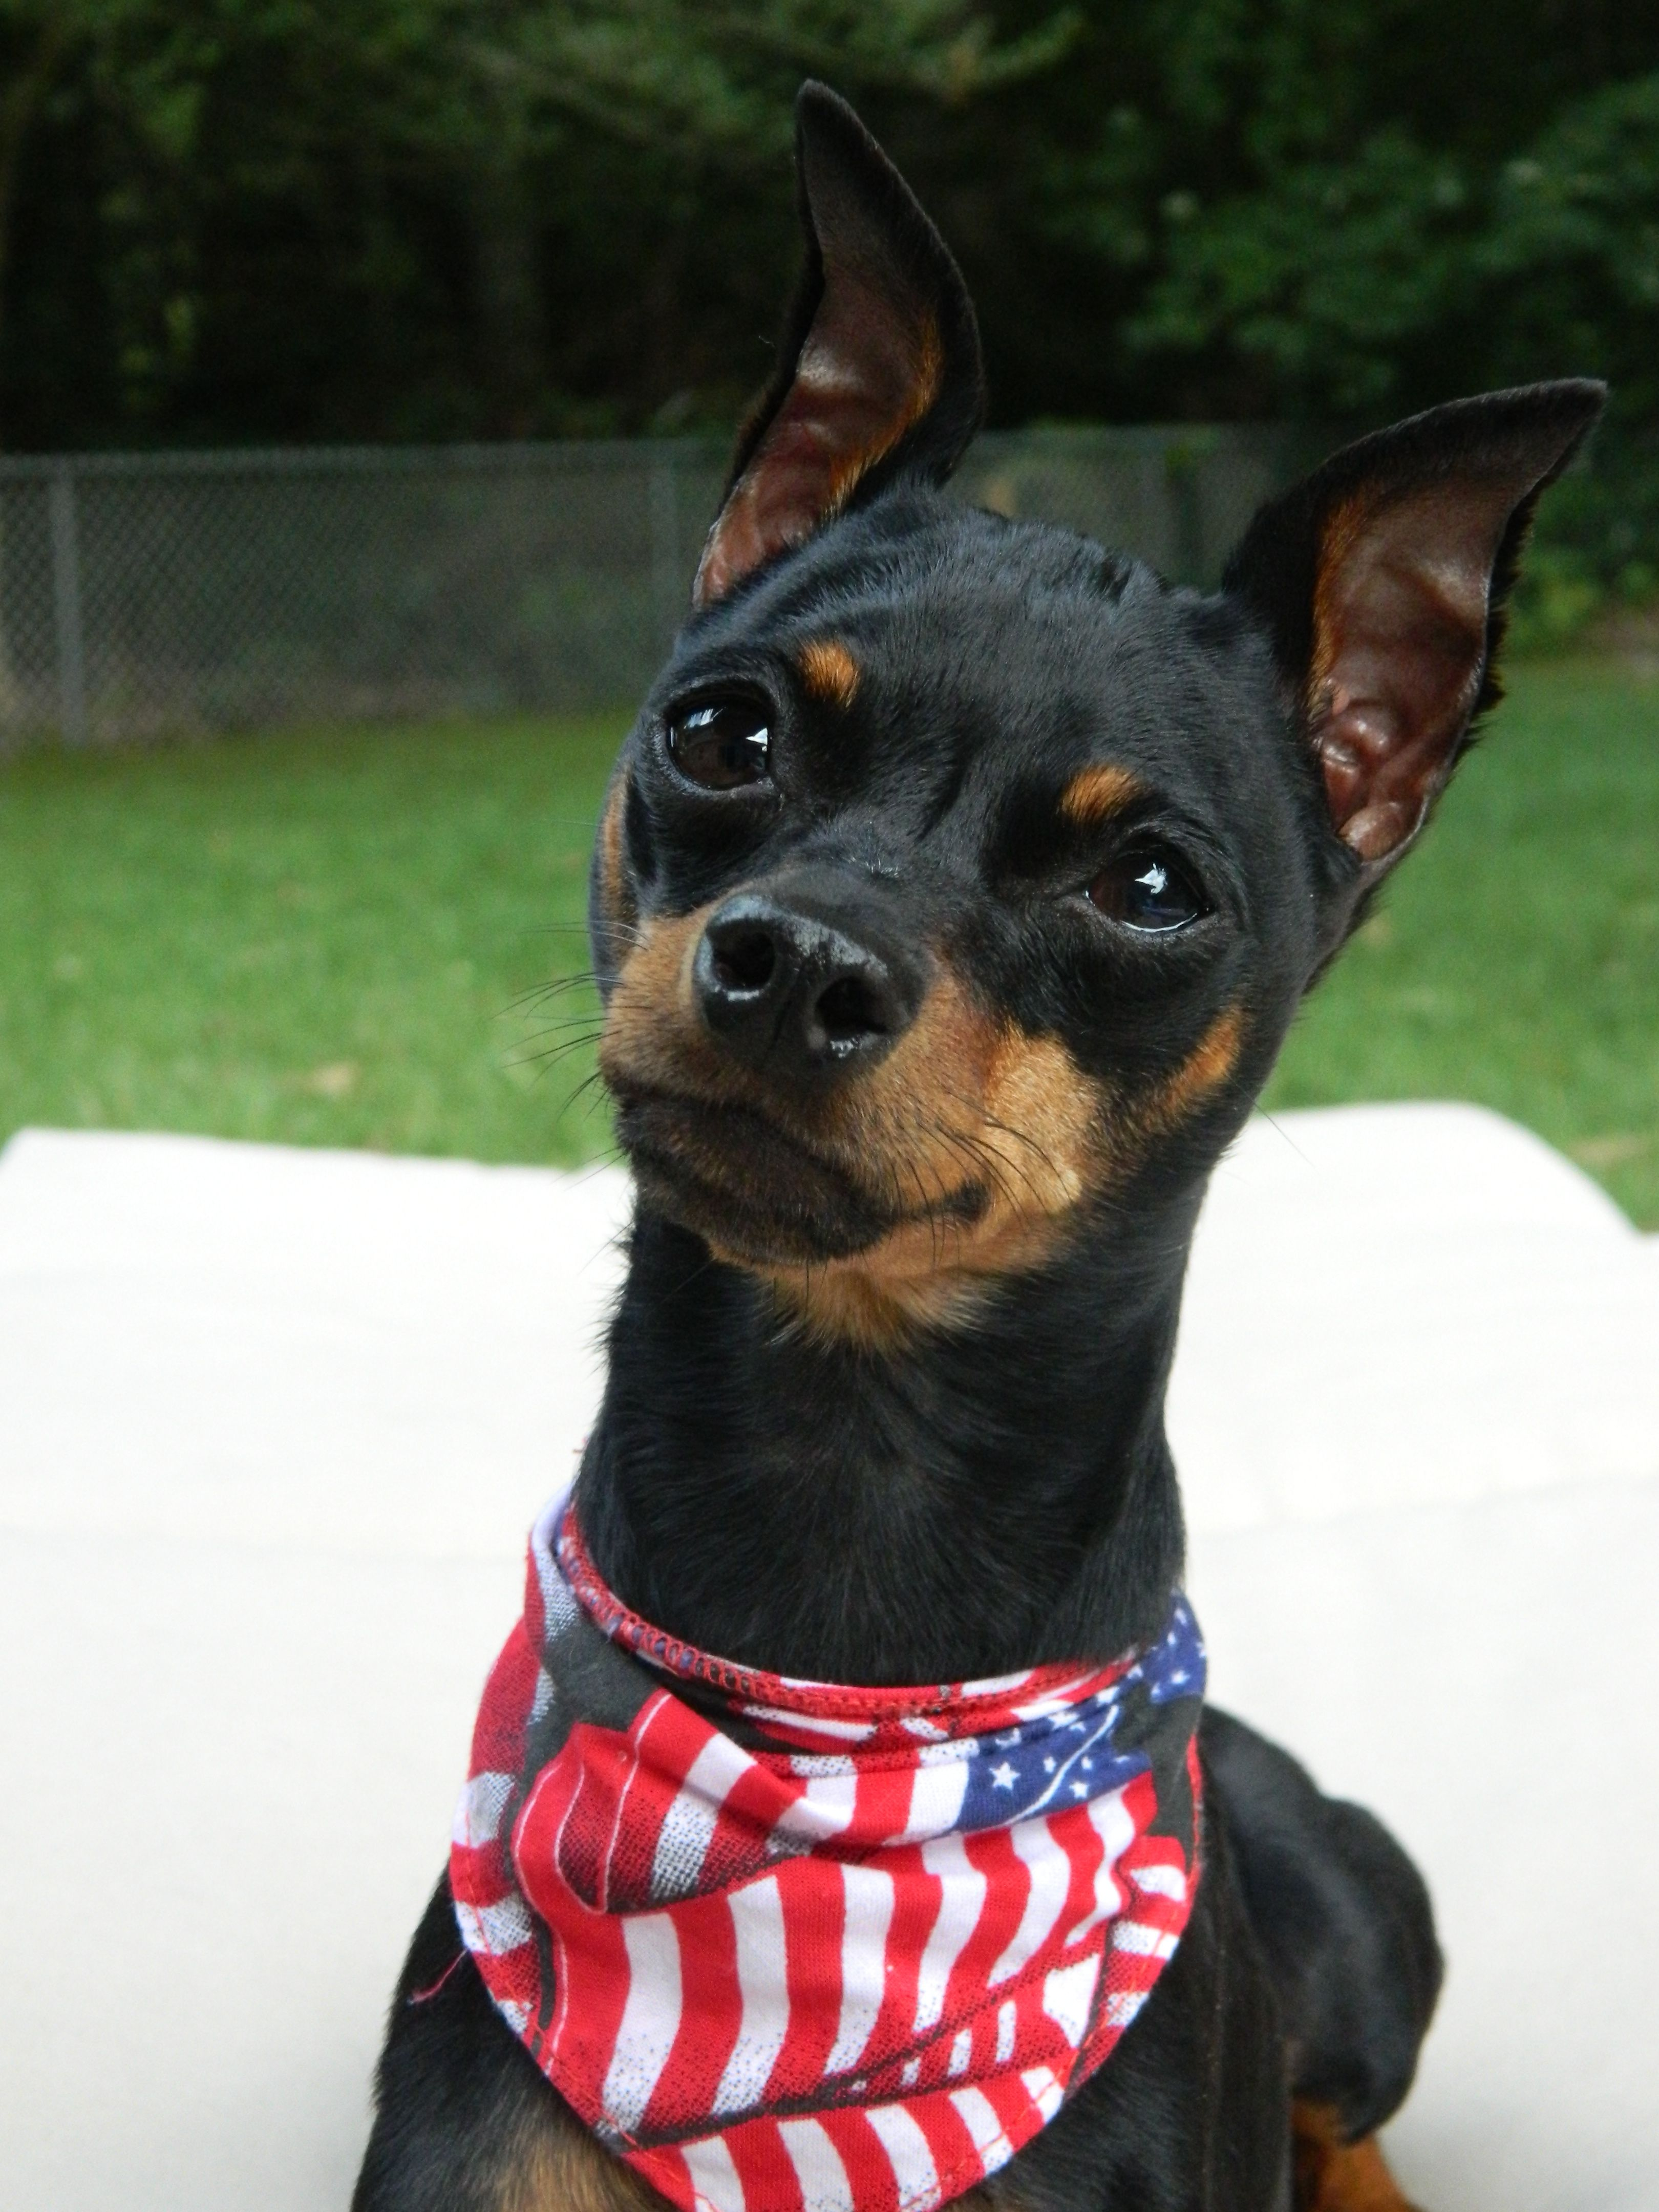 Our 3 Year Old Miniature Pinscher Quest Was Diagnosed With A